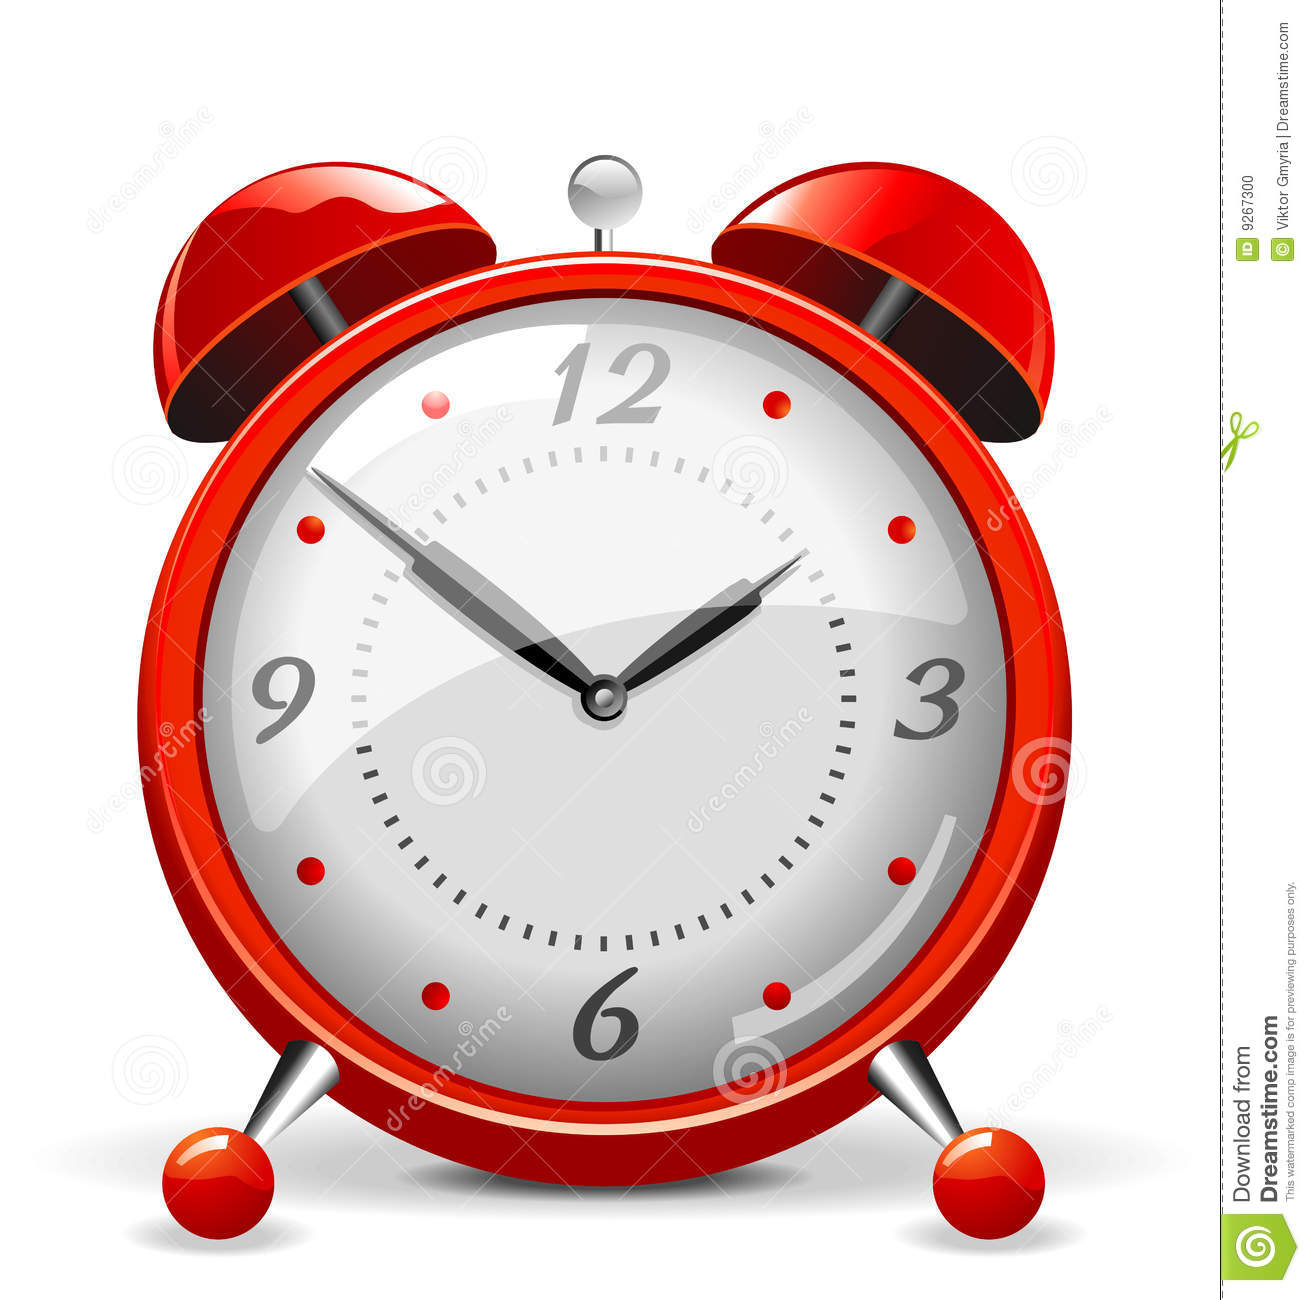 Stock Photo End Year Image16600700 further Stock Photo Red Alarm Clock Image9267300 also Details together with Speech Bubbles Chat Bubbles together with Preview. on alarm clock icon